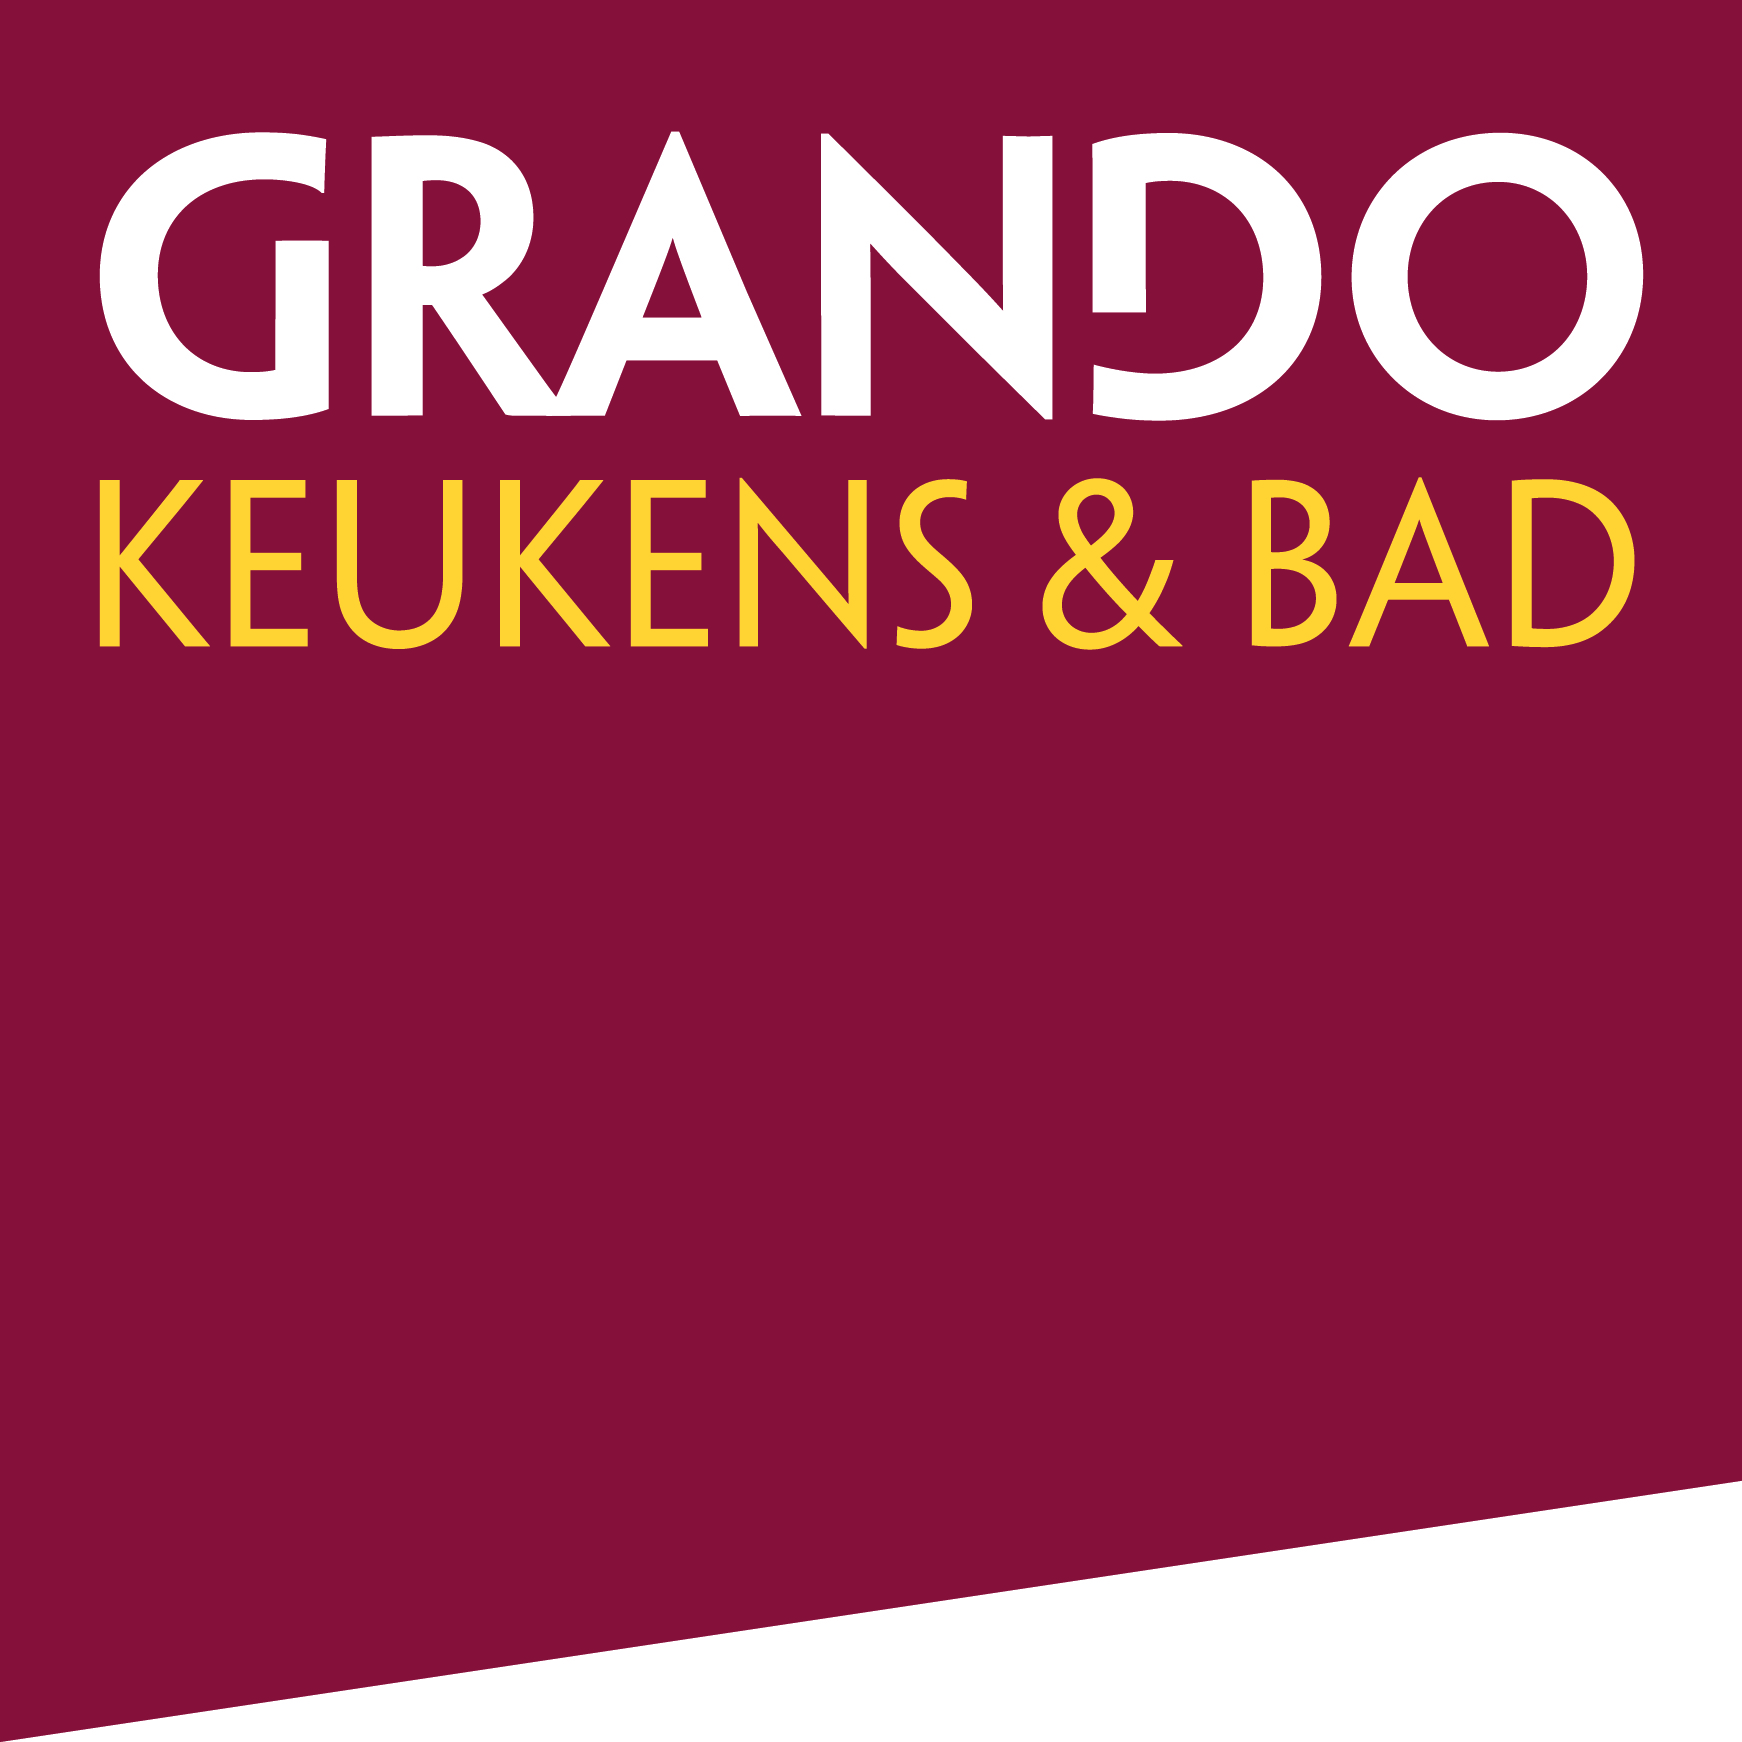 Grando Keukens & Bad Veghel